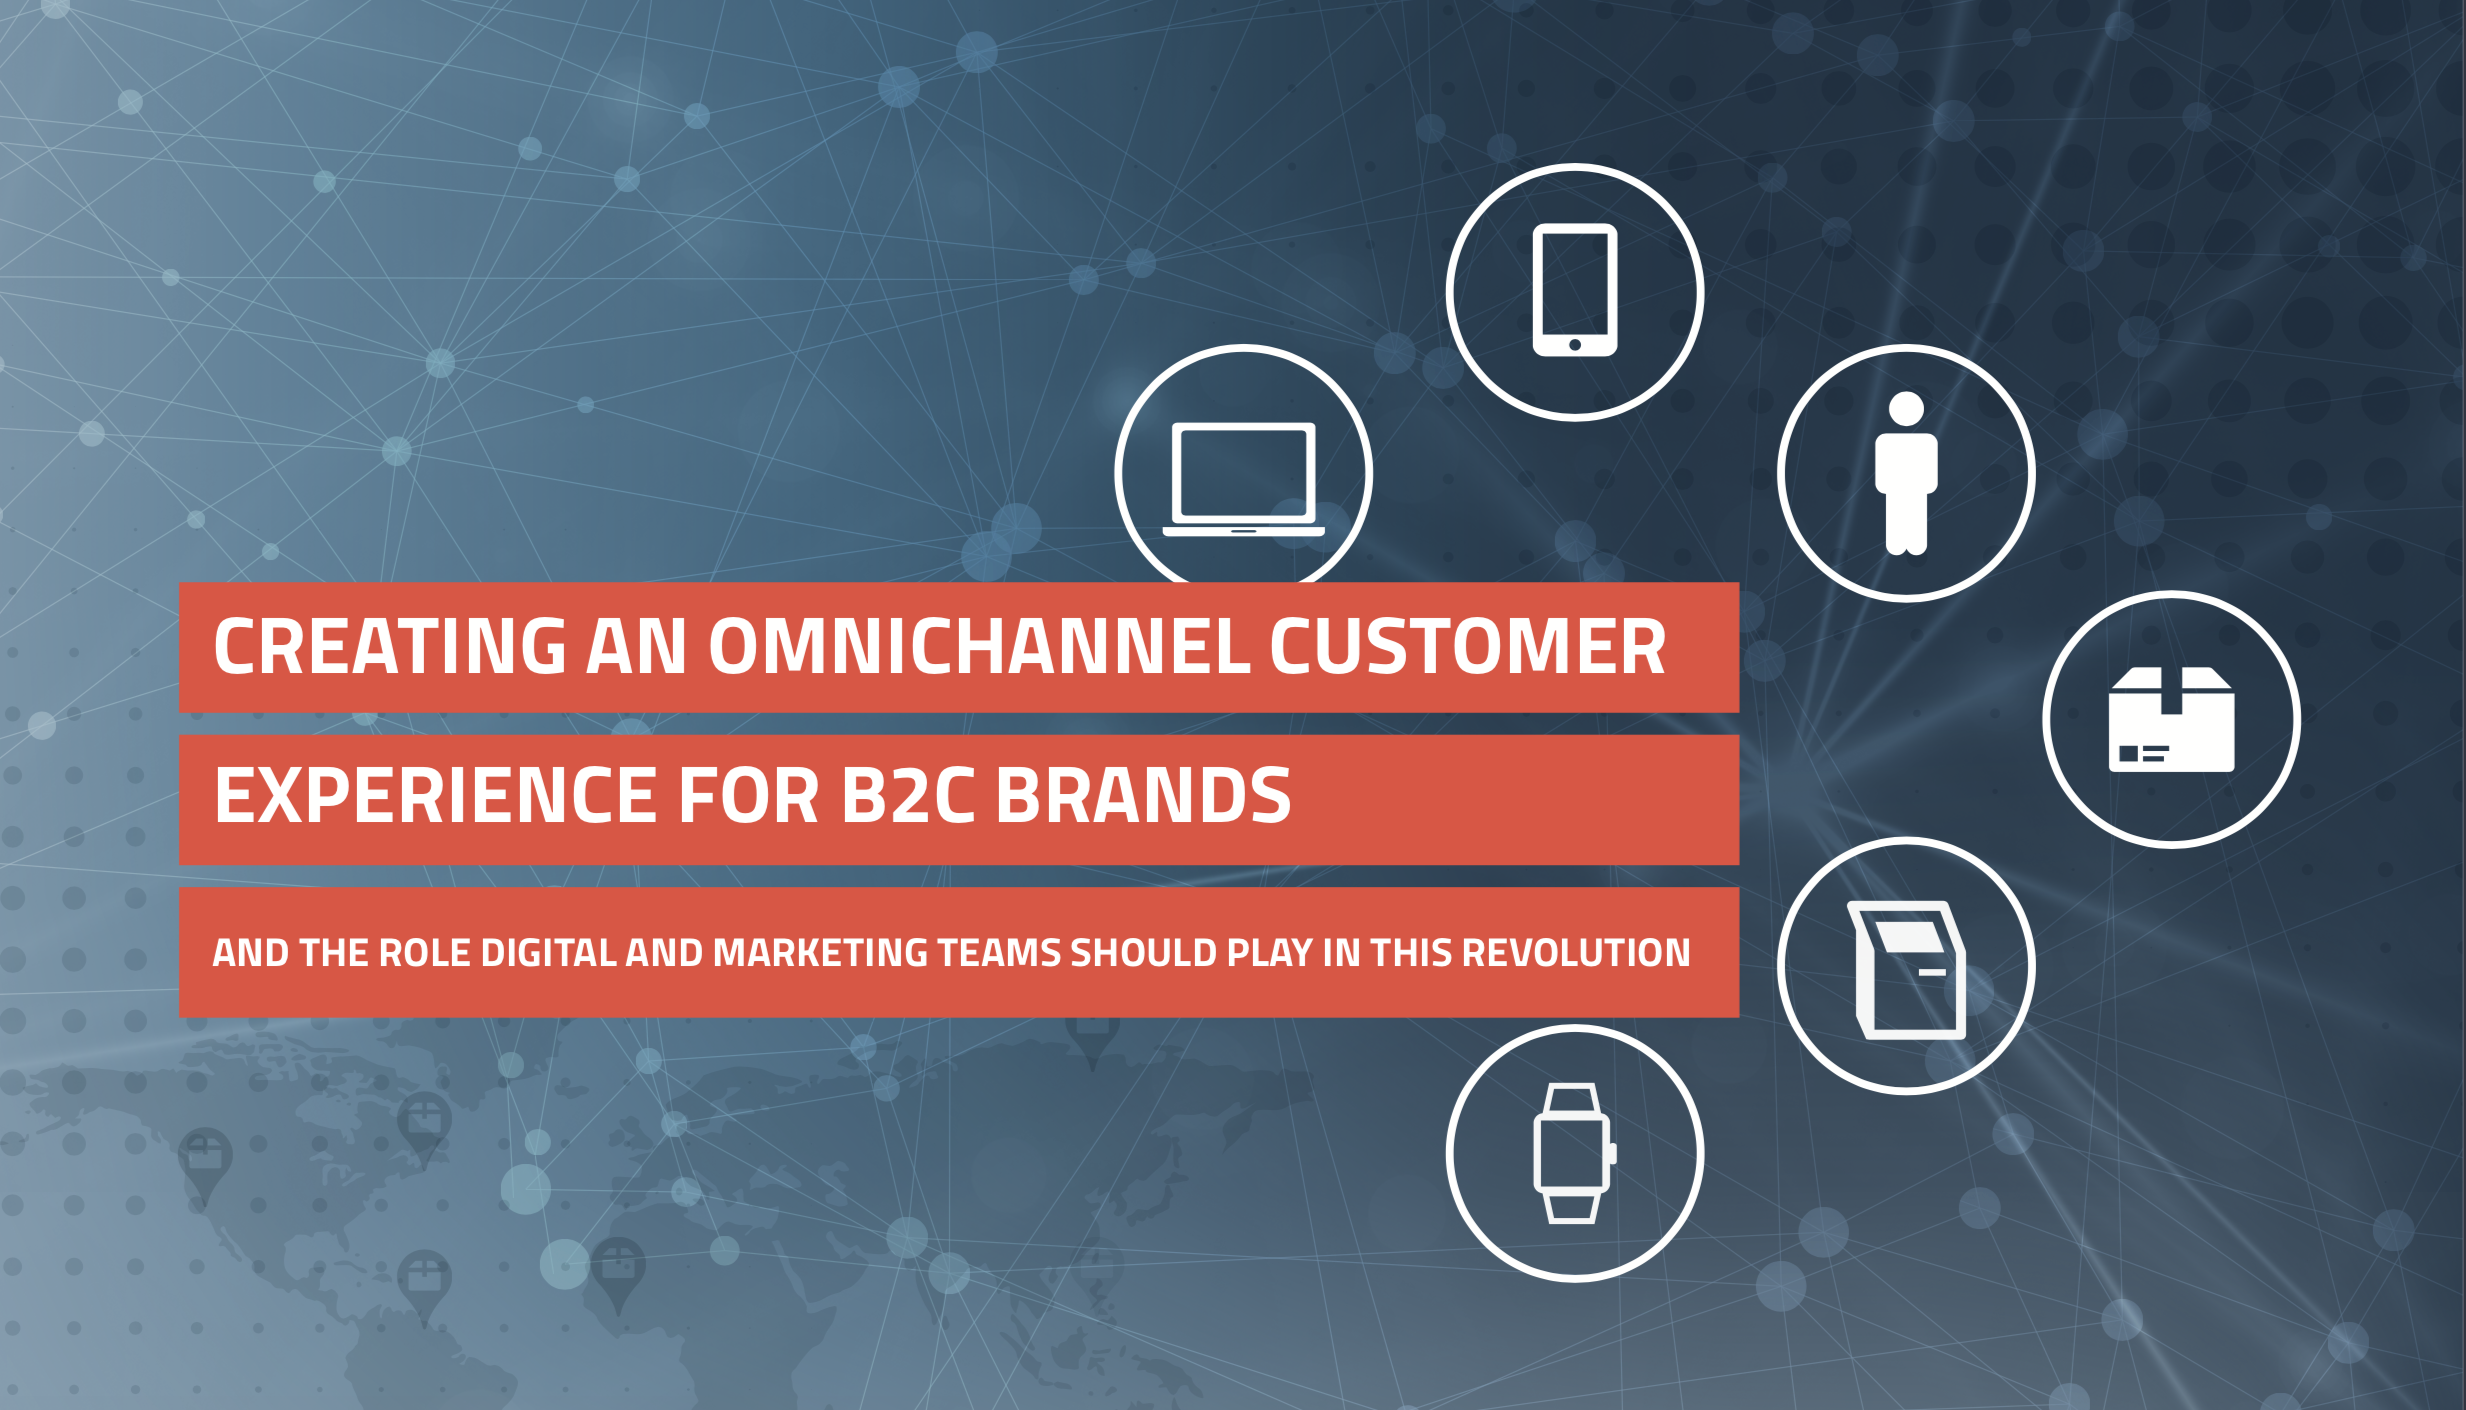 Creating An Omnichannel Customer Experience For B2C Brands